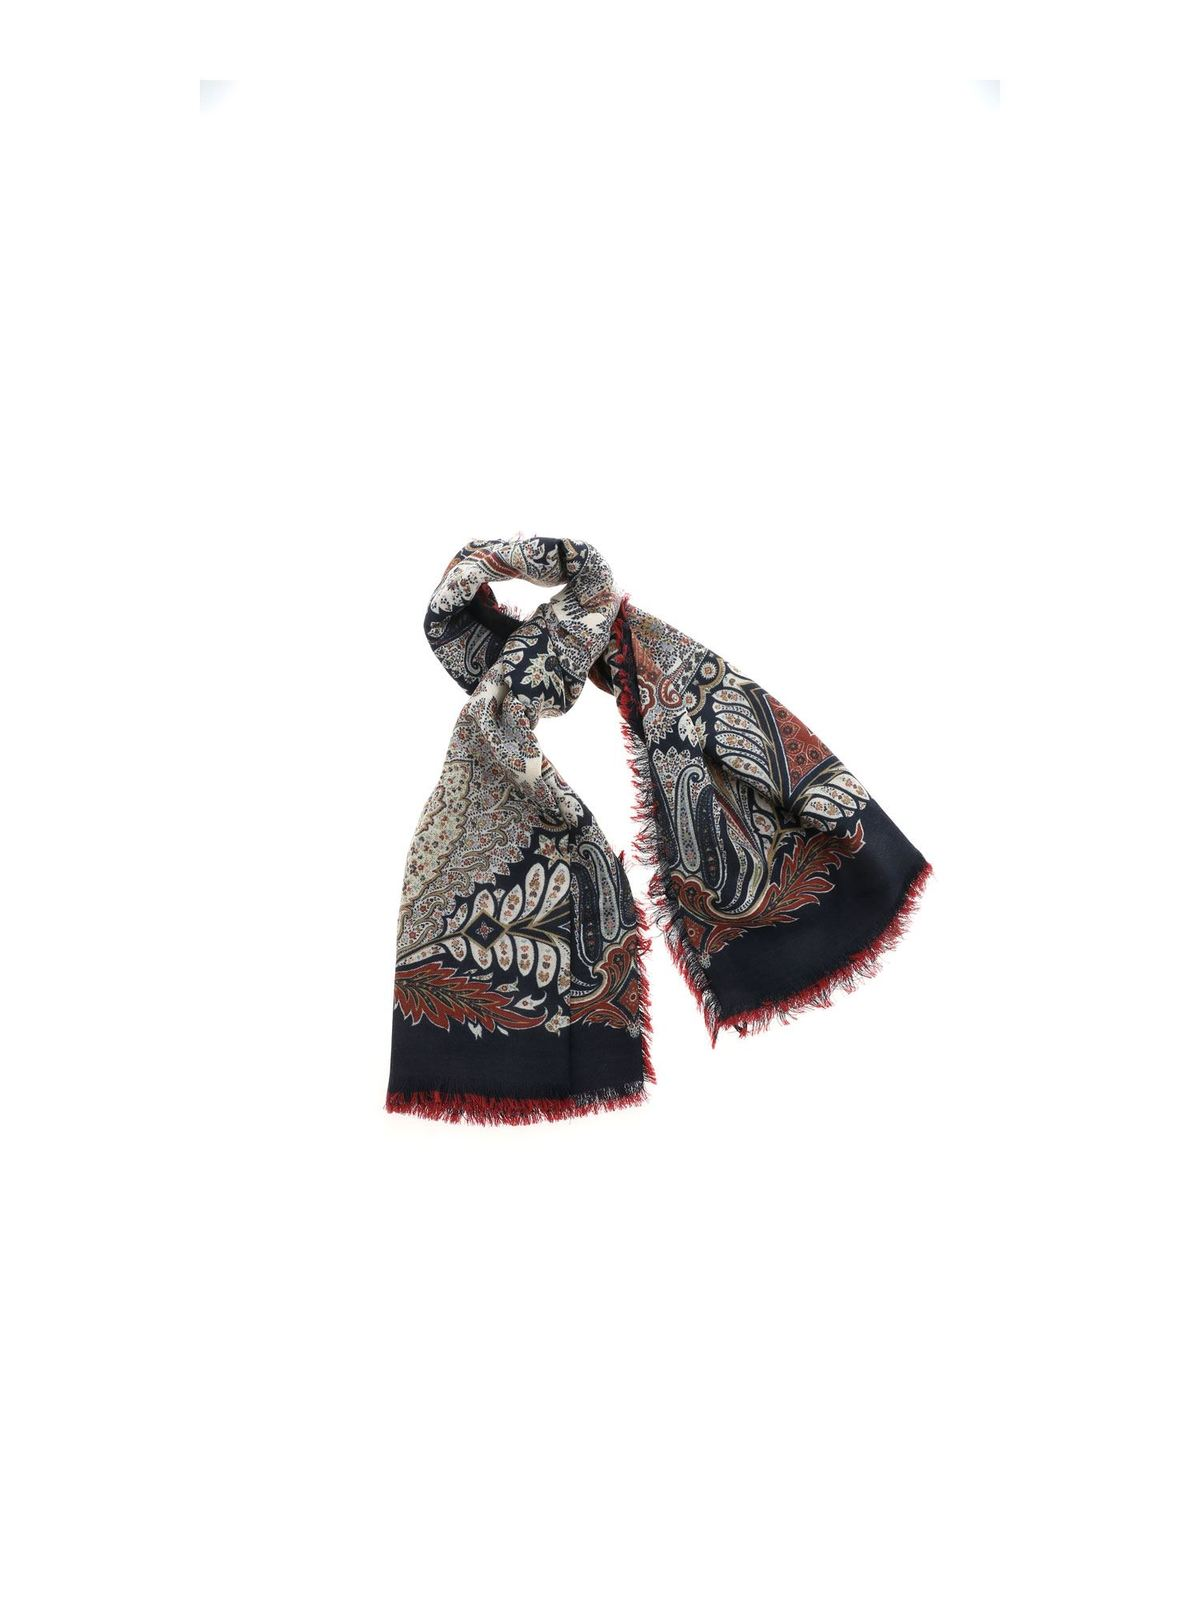 Etro Accessories CONTRASTING PATTERN PASHMINA IN BLUE